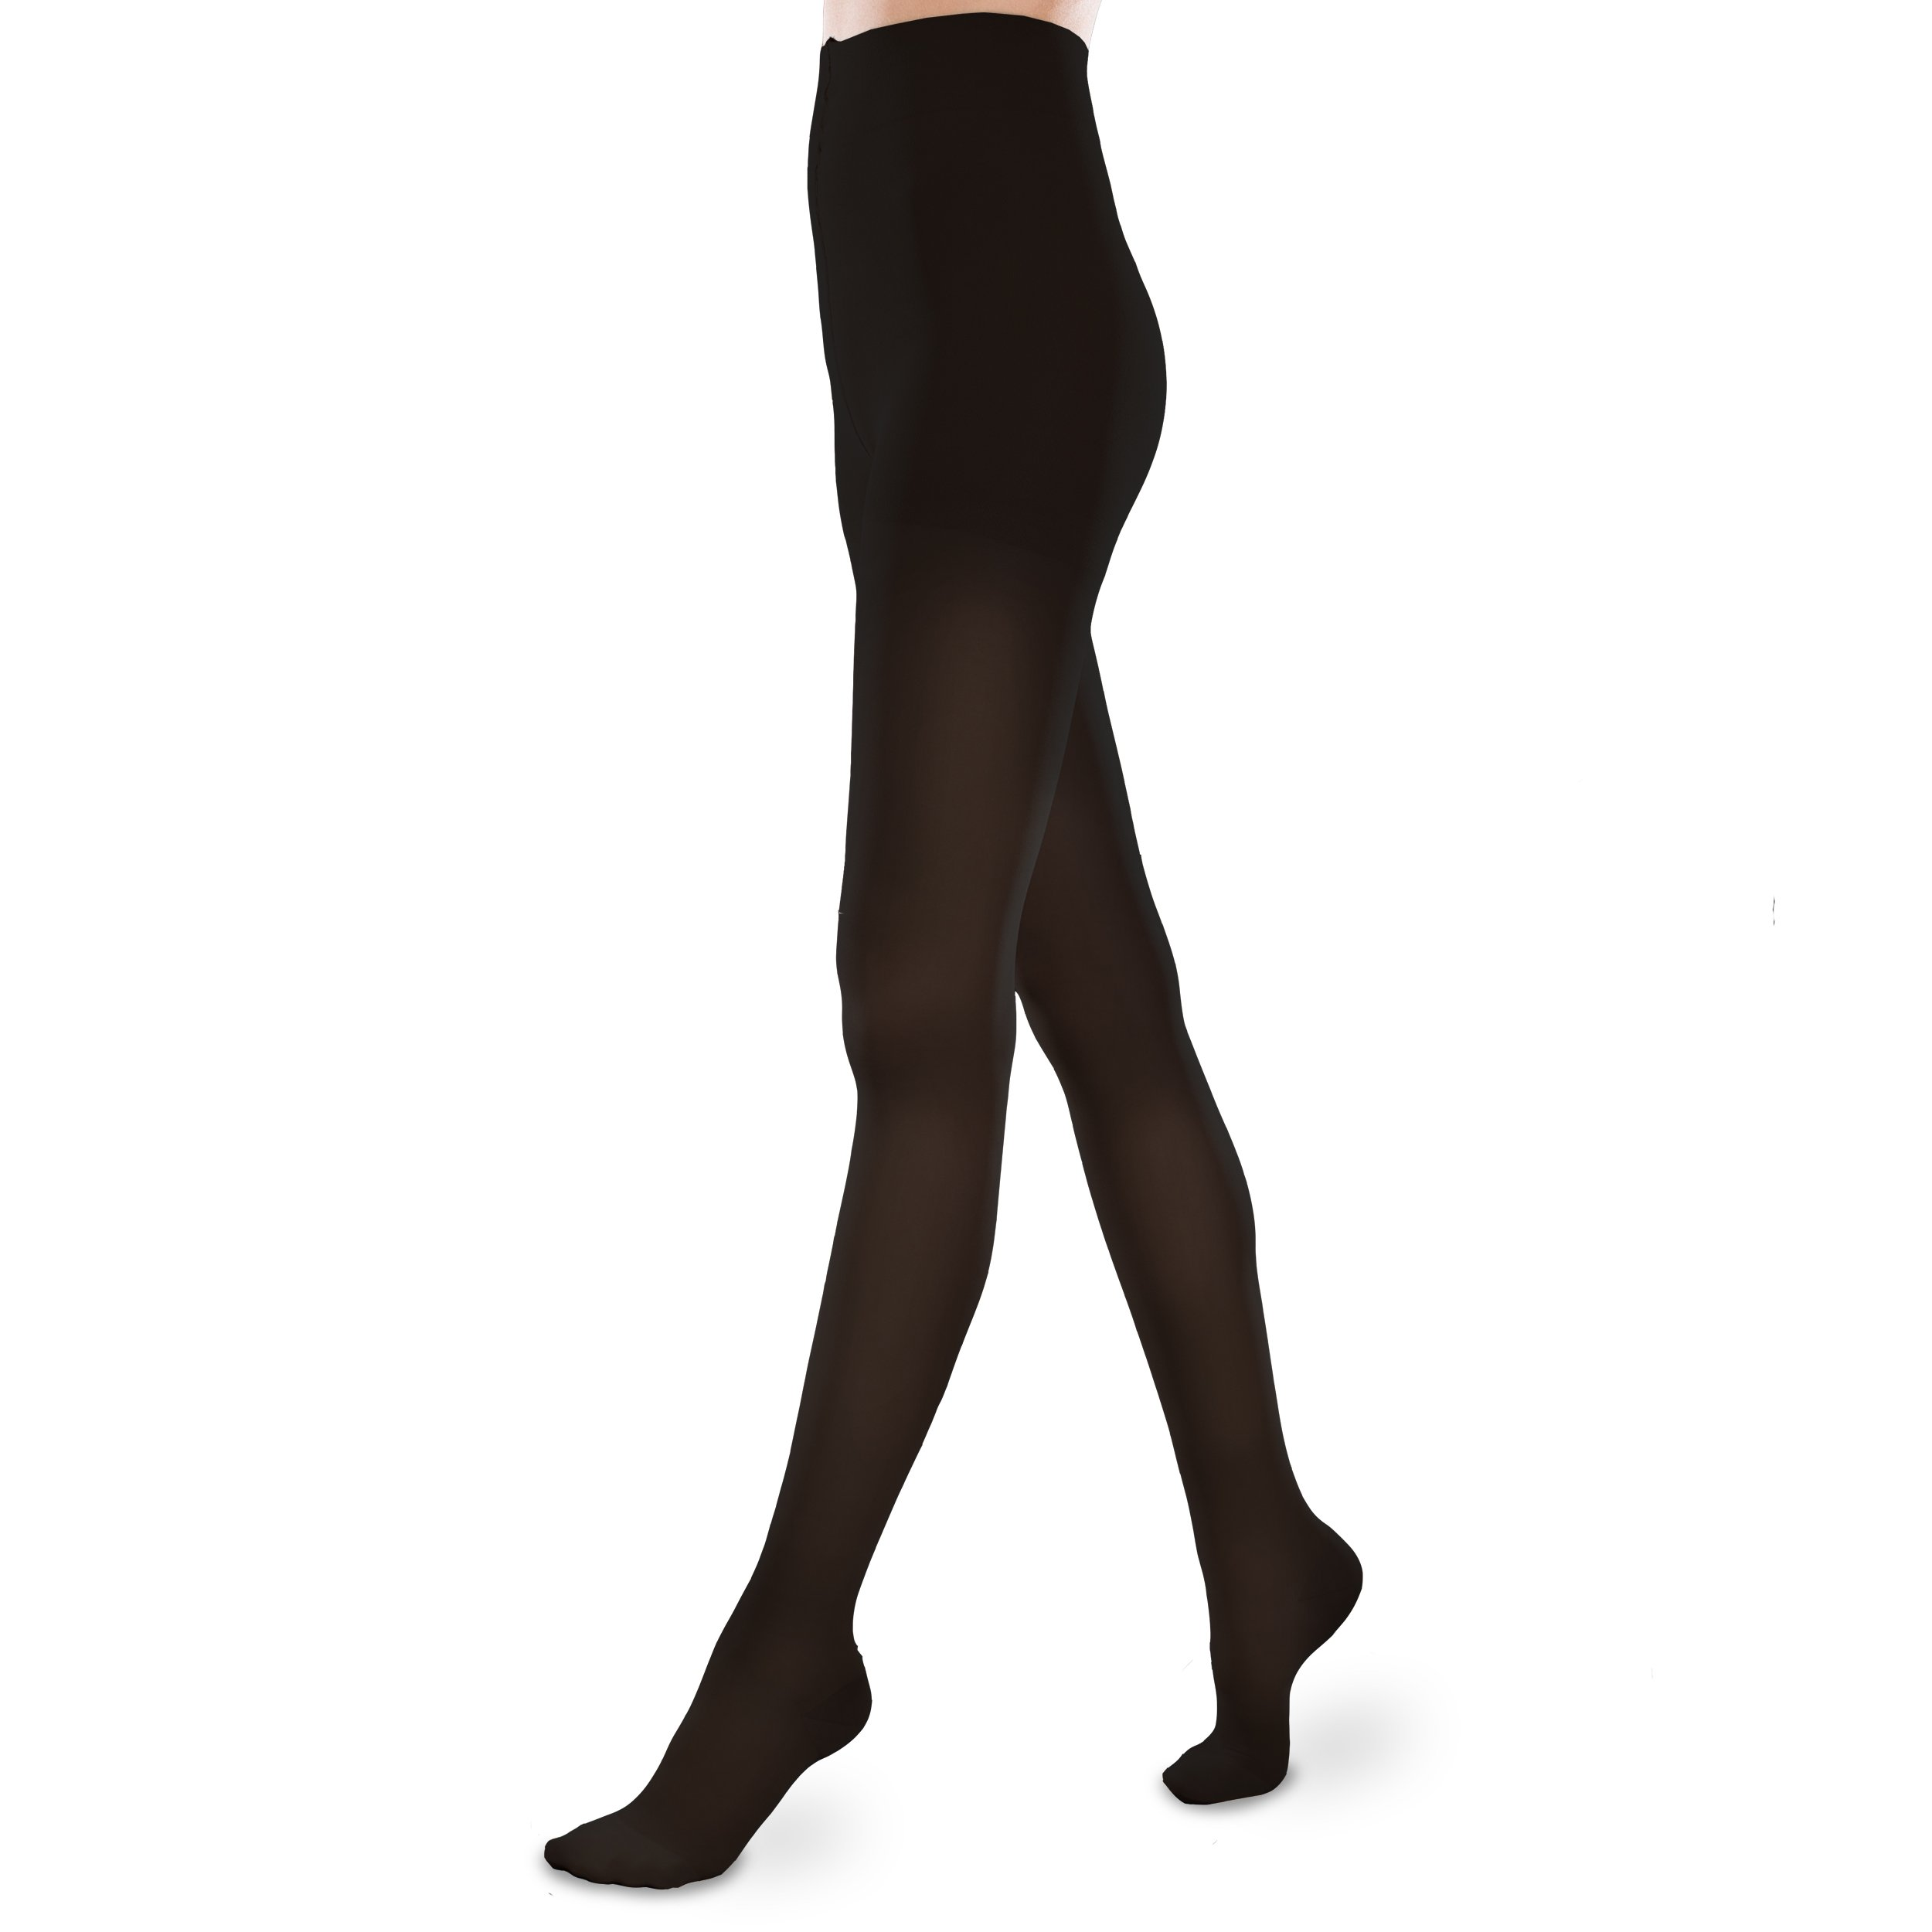 Sheer Ease Women's Support Pantyhose - 20-30mmHg Moderate Compression Stockings (Black, Small Long)